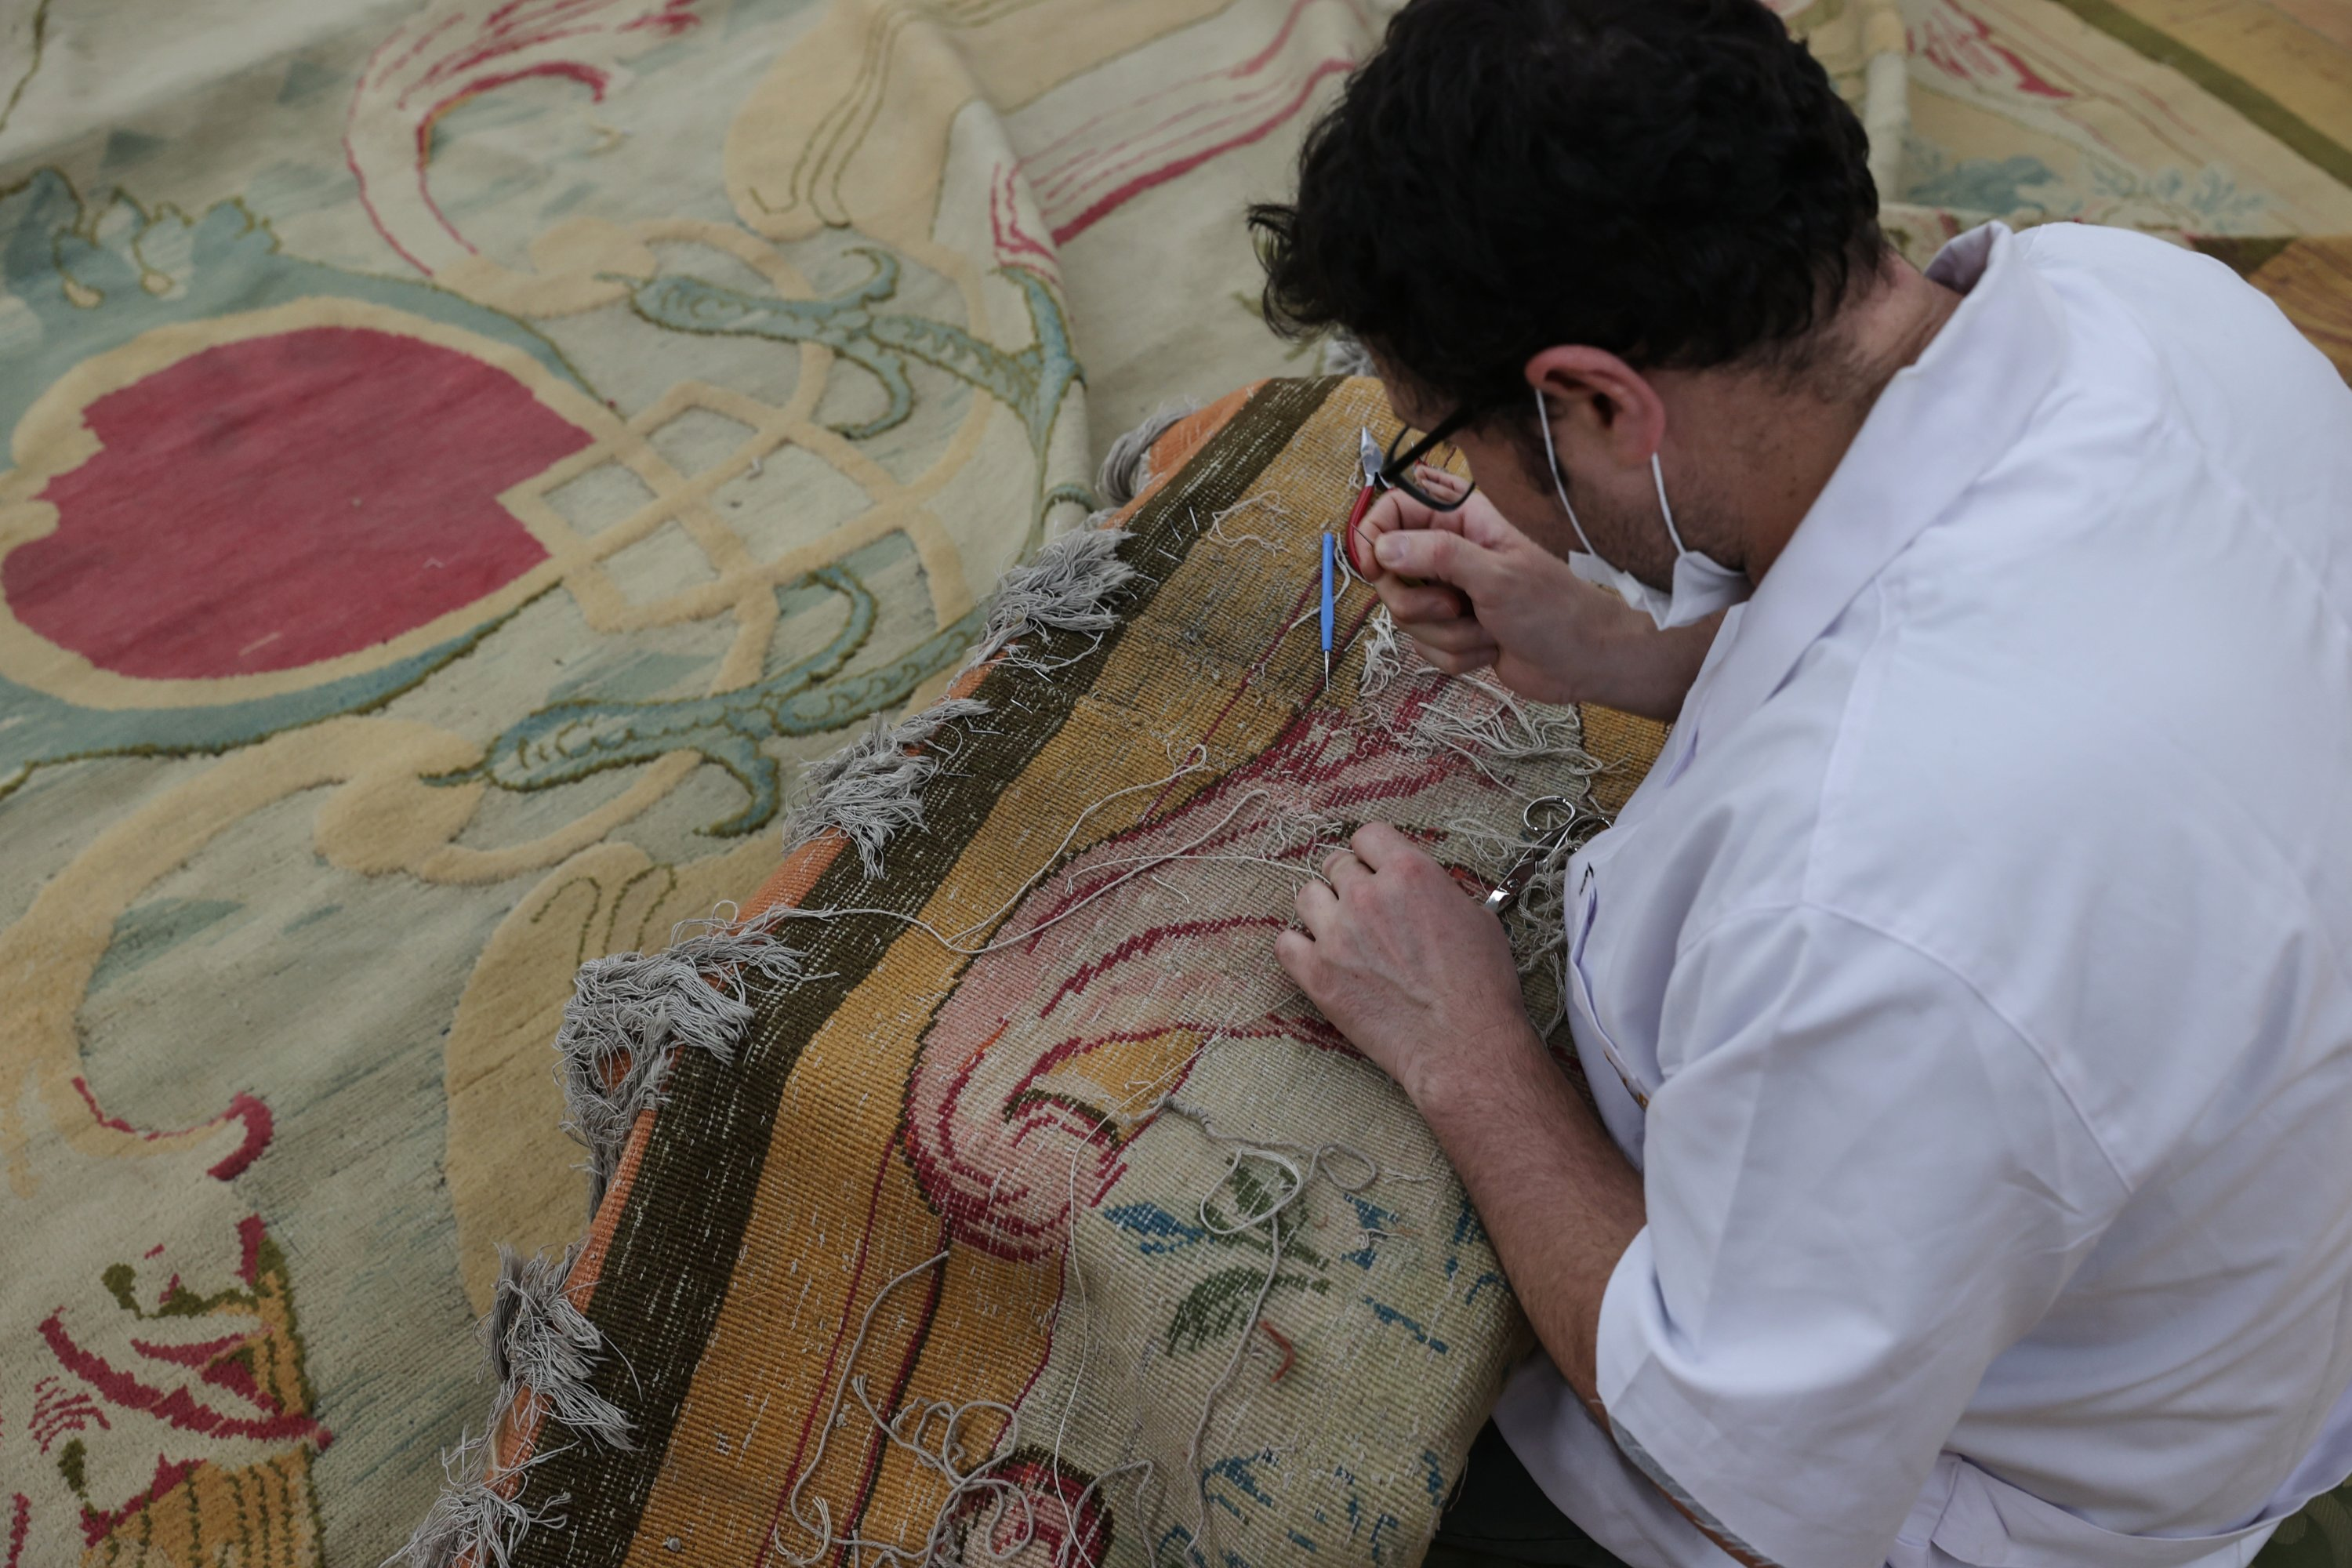 An expert works on the restoration of the carpet in the workshop of the Yıldız Şale Mansion, Istanbul, Turkey, June 17, 2021. (AA Photo)